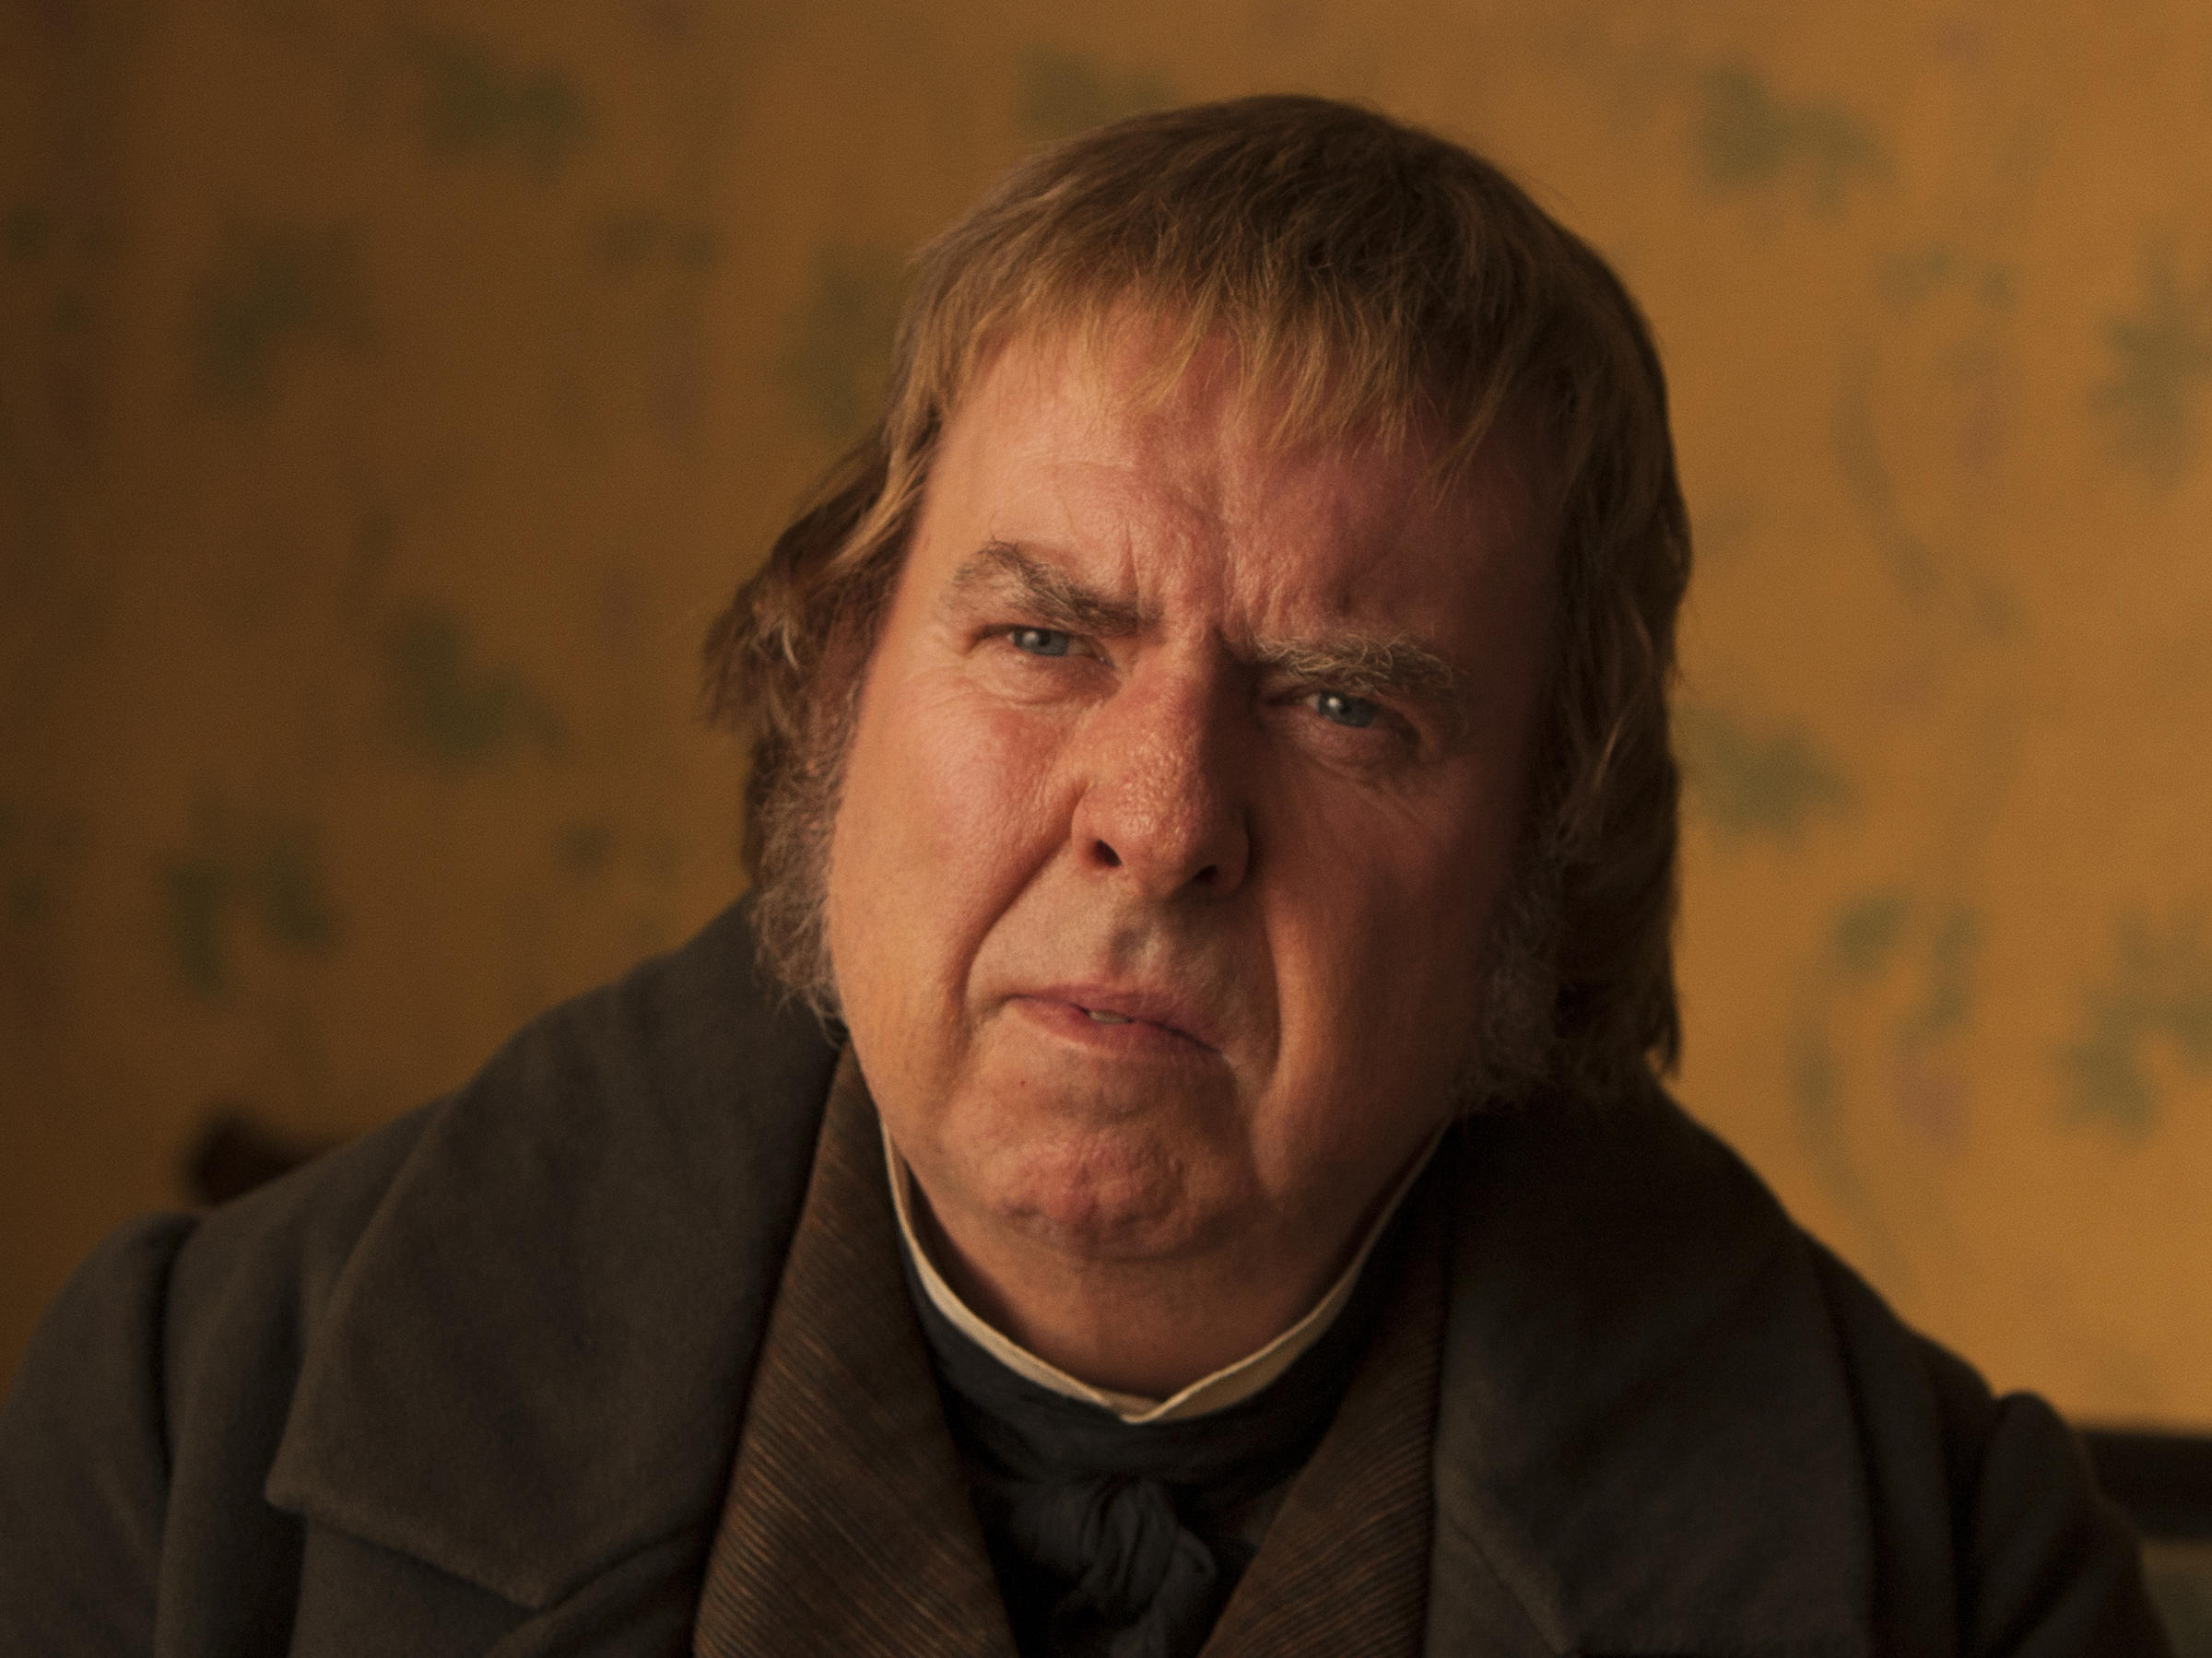 timothy spall lost weight